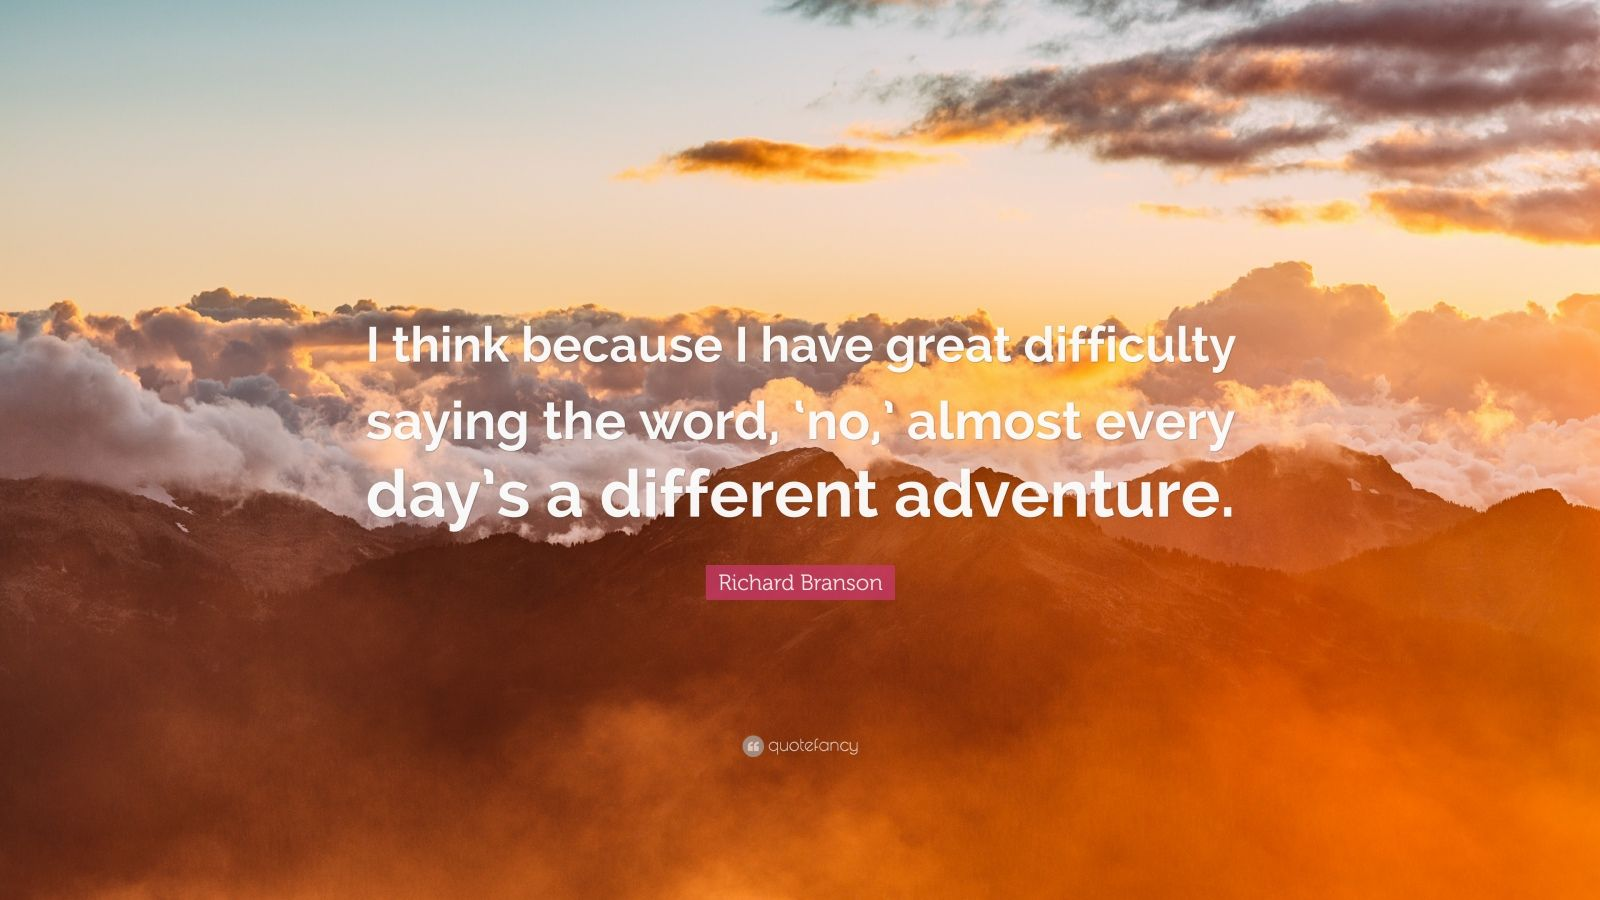 """Richard Branson Quote: """"I think because I have great difficulty saying the word, 'no,' almost every day's a different adventure."""""""